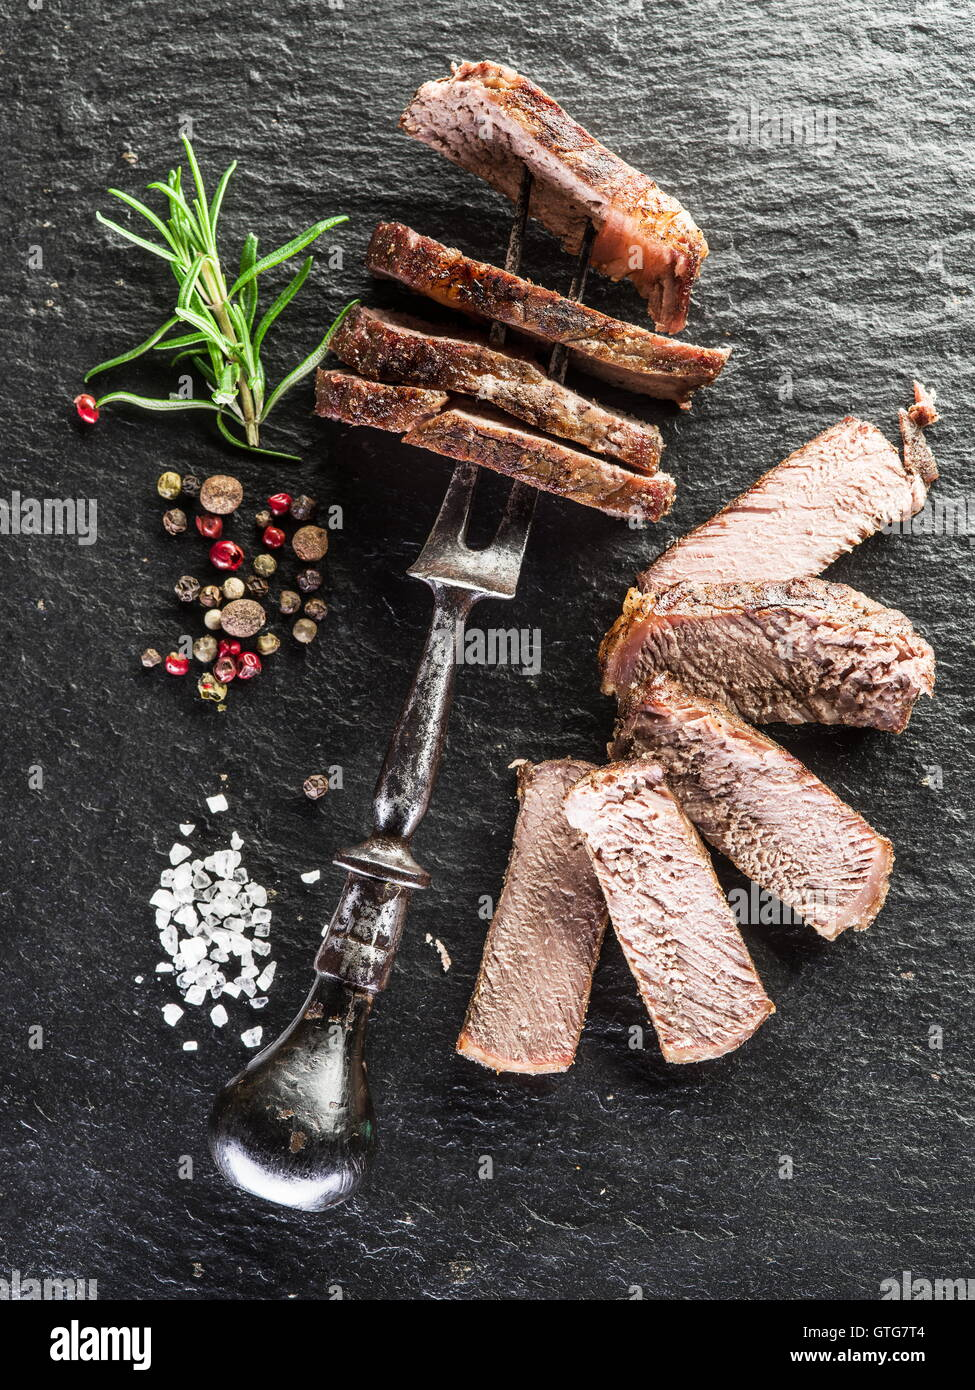 Steak Ribeye with spices on the graphite tray. Stock Photo